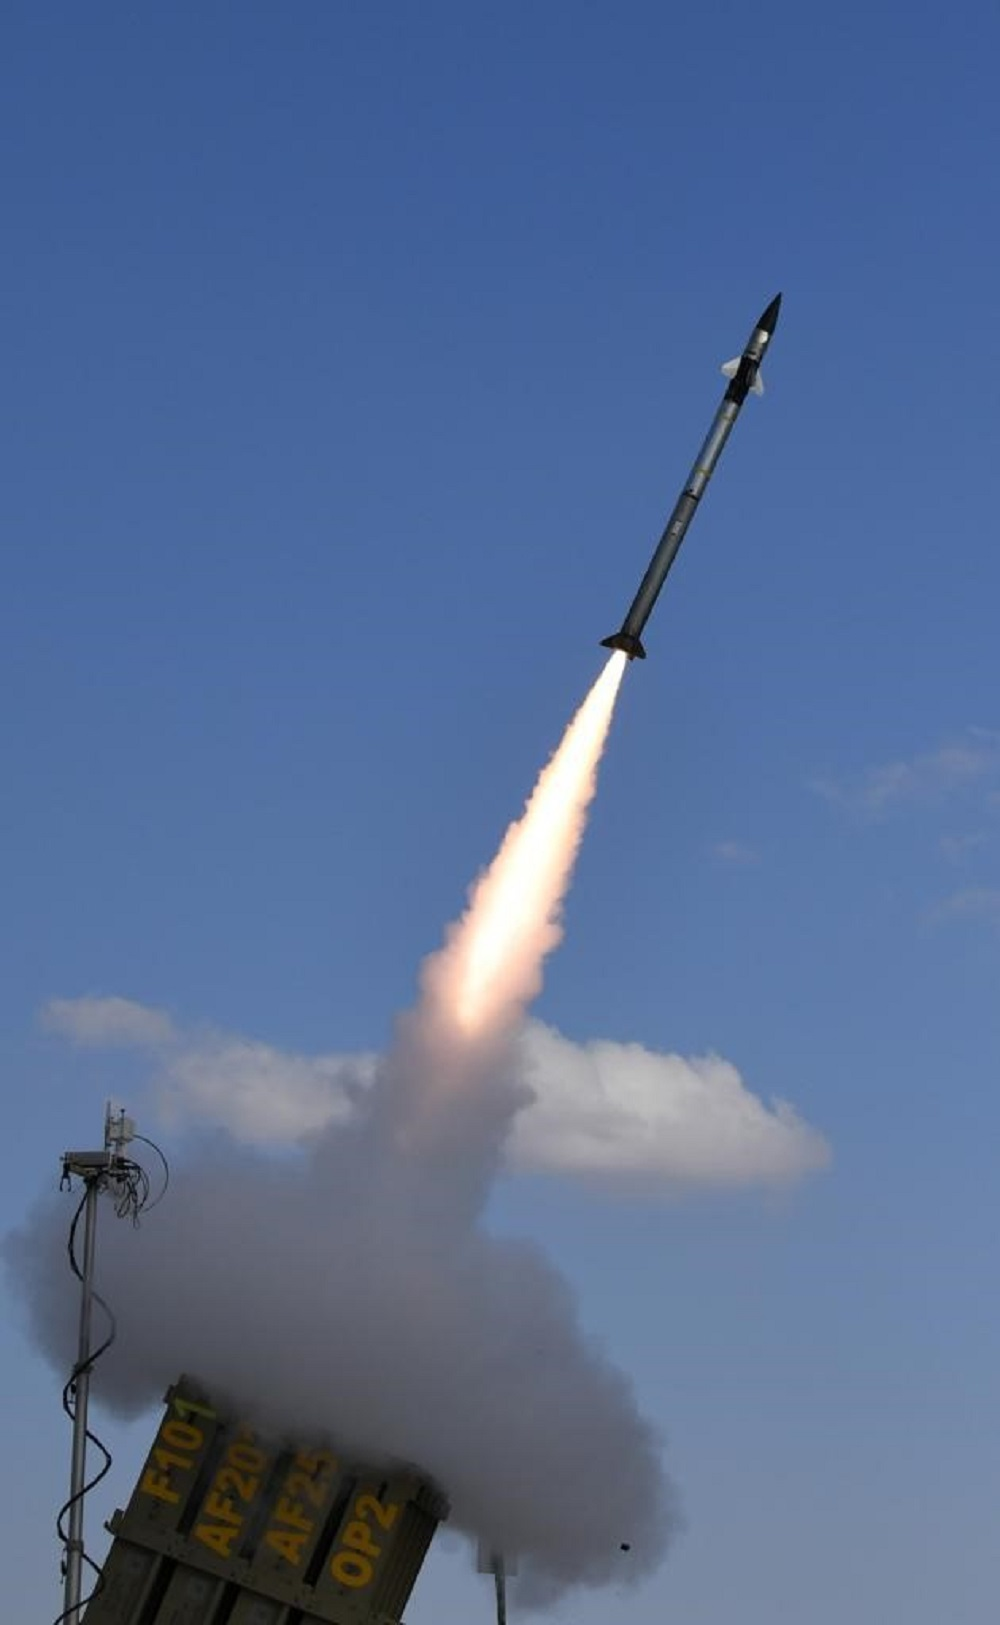 Israel Missile Defense Organization and Rafael Complete Successful Series of Tests of Iron Dome System